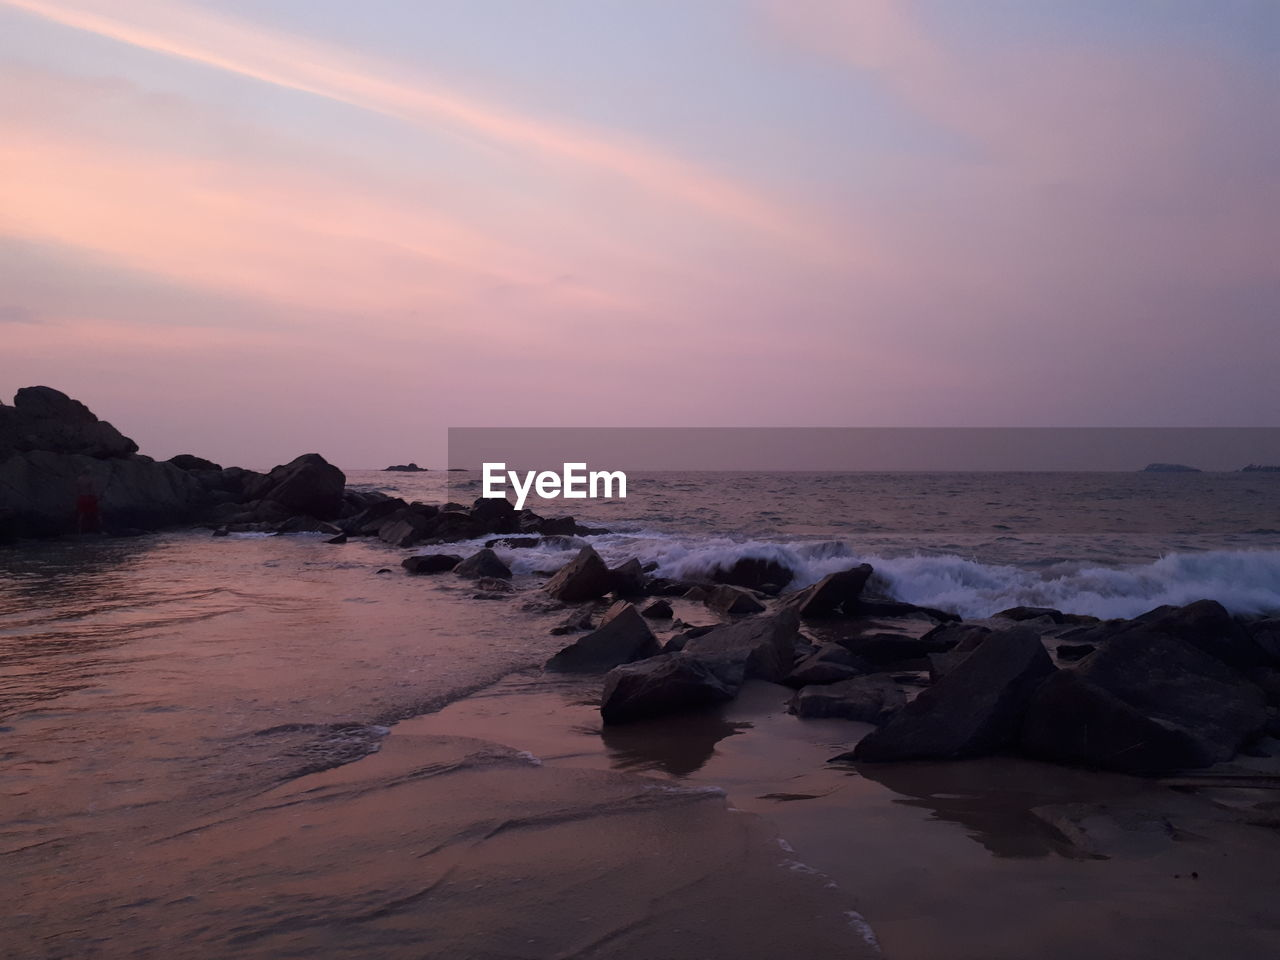 sky, water, sea, sunset, beauty in nature, scenics - nature, tranquility, rock, tranquil scene, horizon over water, horizon, land, beach, solid, rock - object, non-urban scene, cloud - sky, nature, idyllic, no people, outdoors